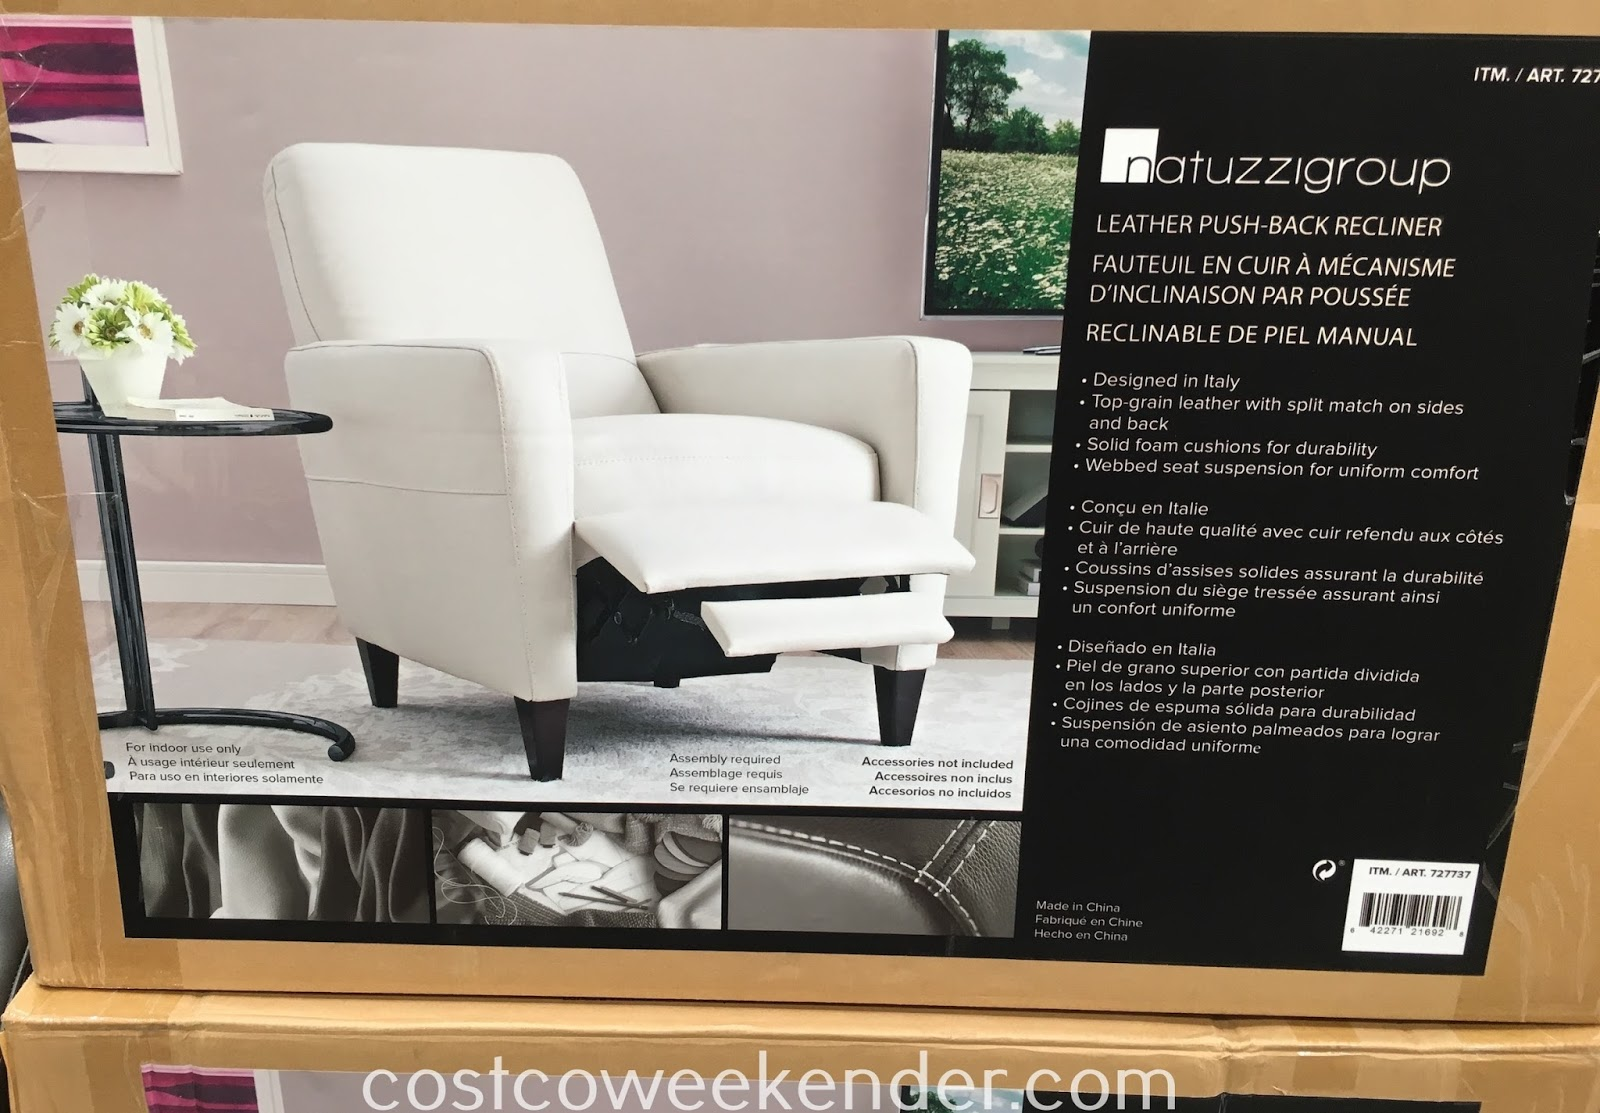 Natuzzi Group Leather Push-back Recliner Chair - Not your father's old-fashioned recliner